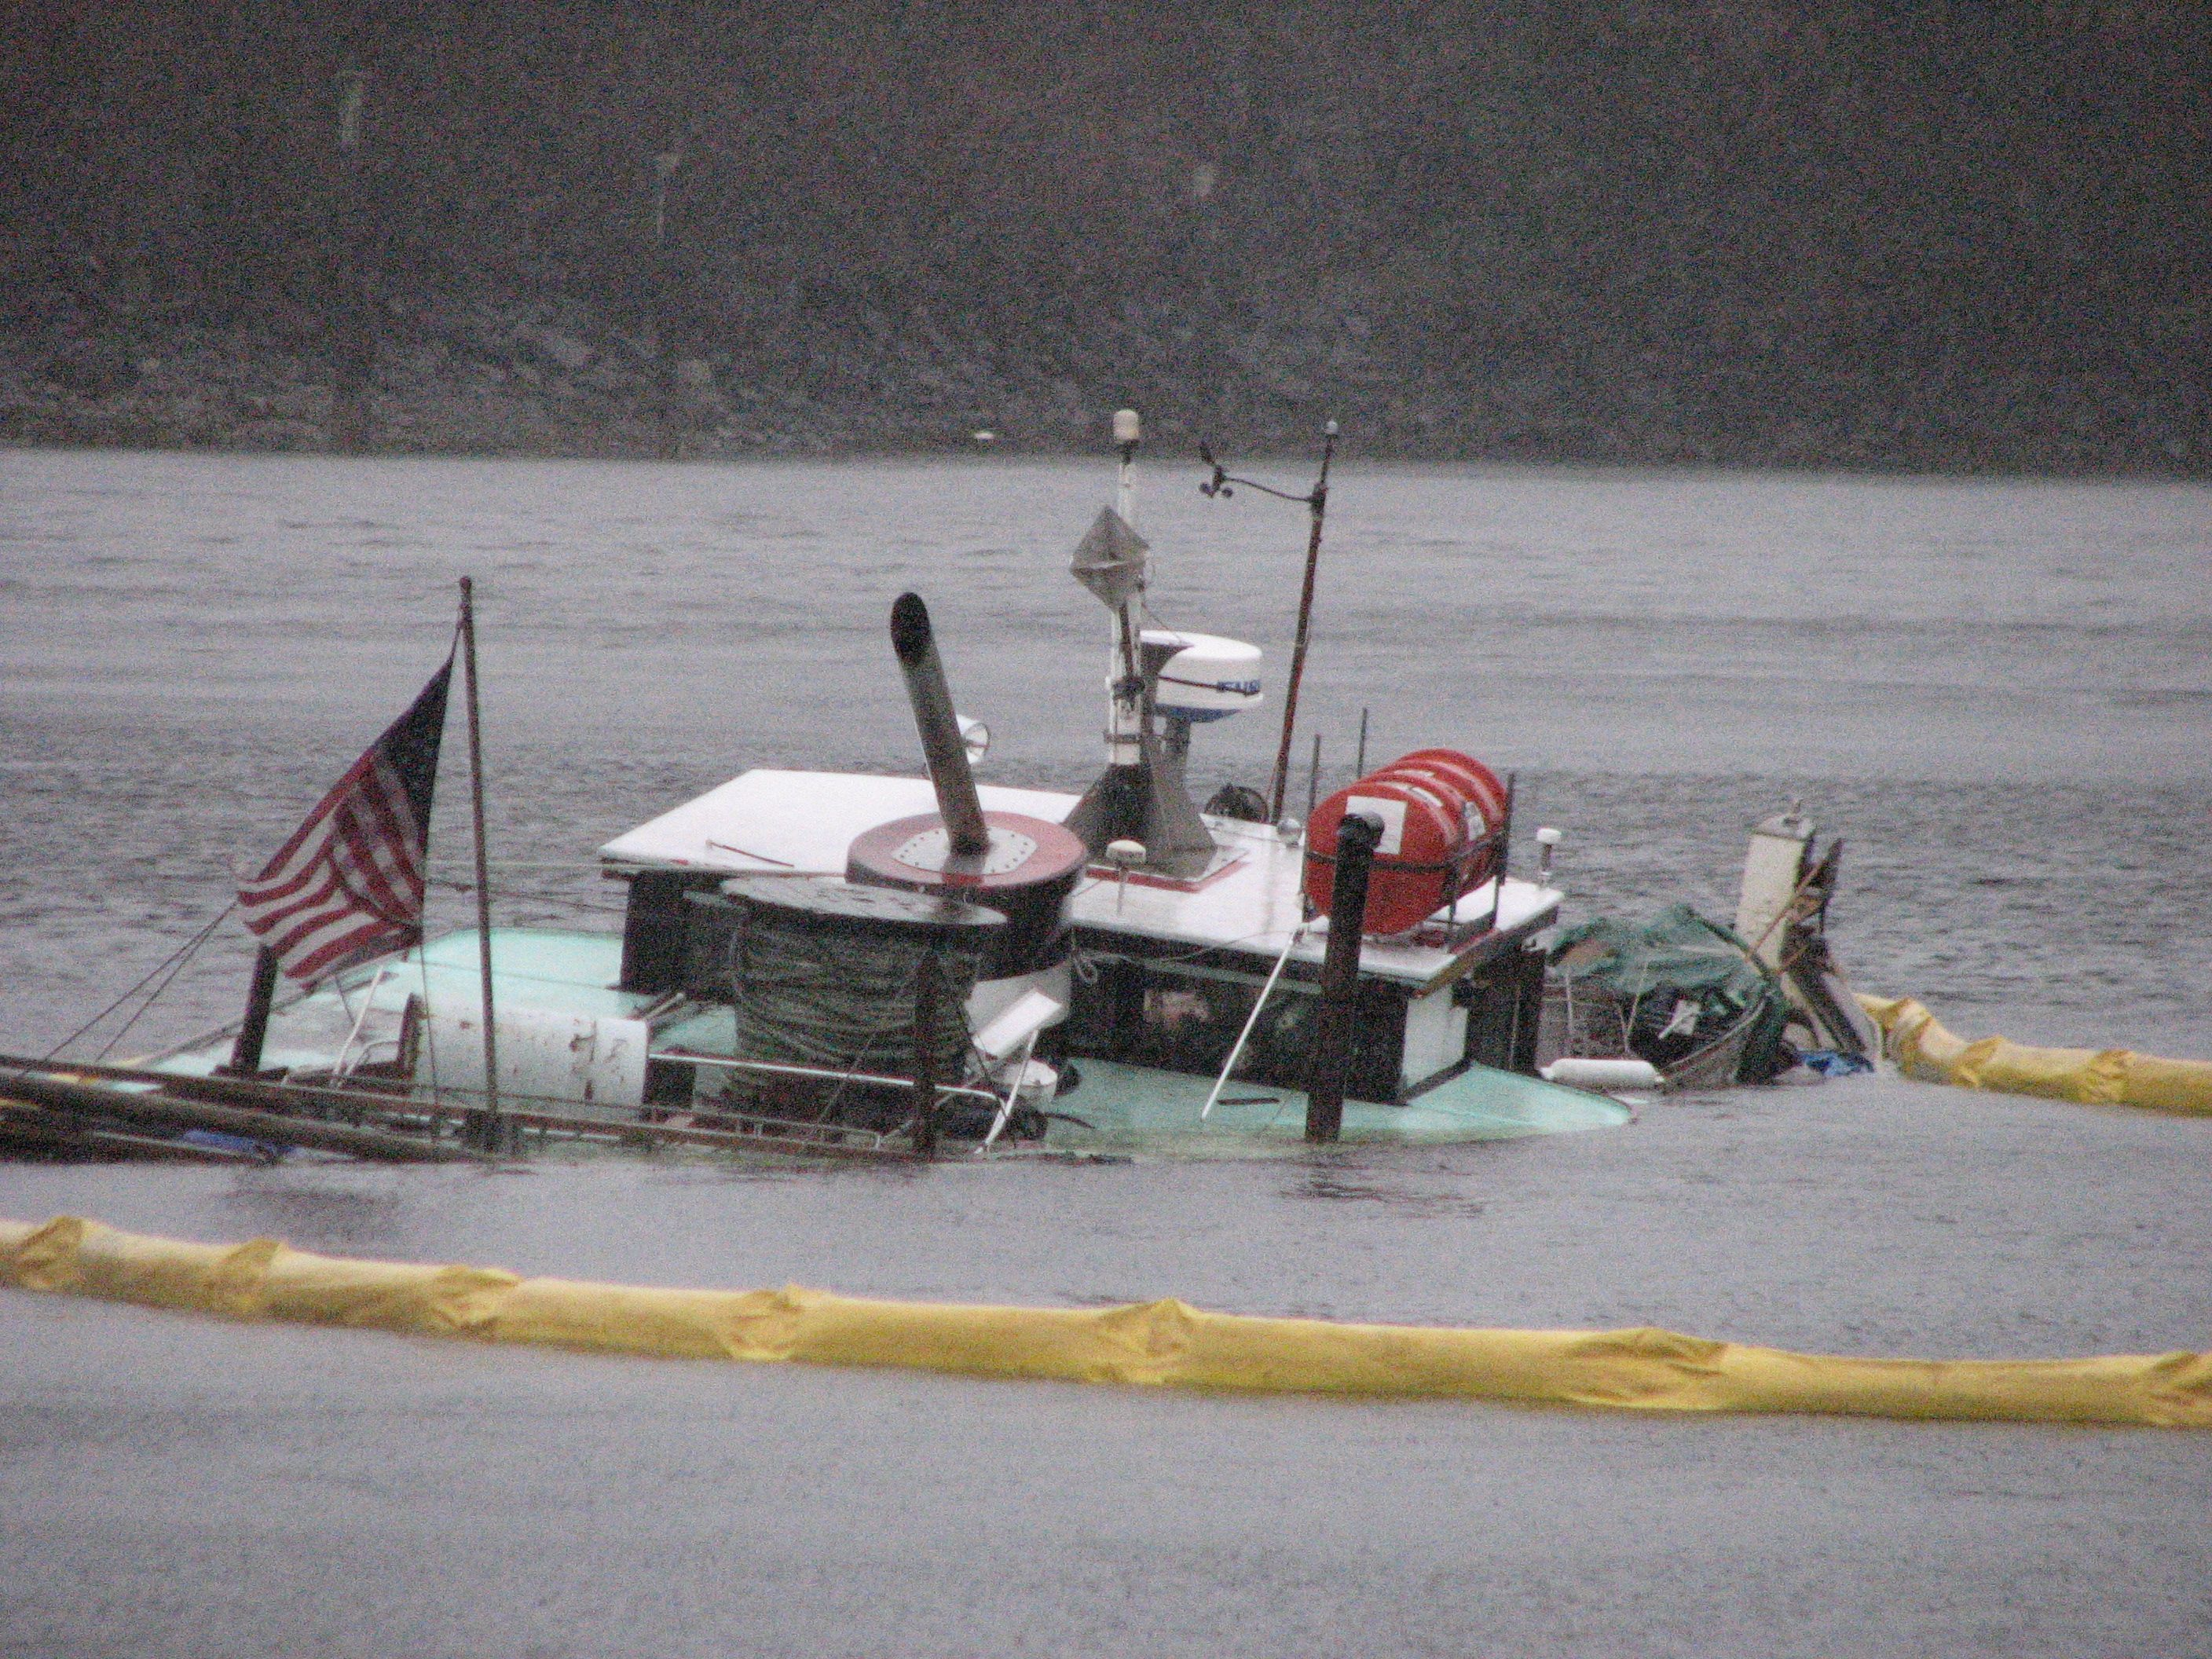 CG Marine Safety Detachment Ketchikan responded to the